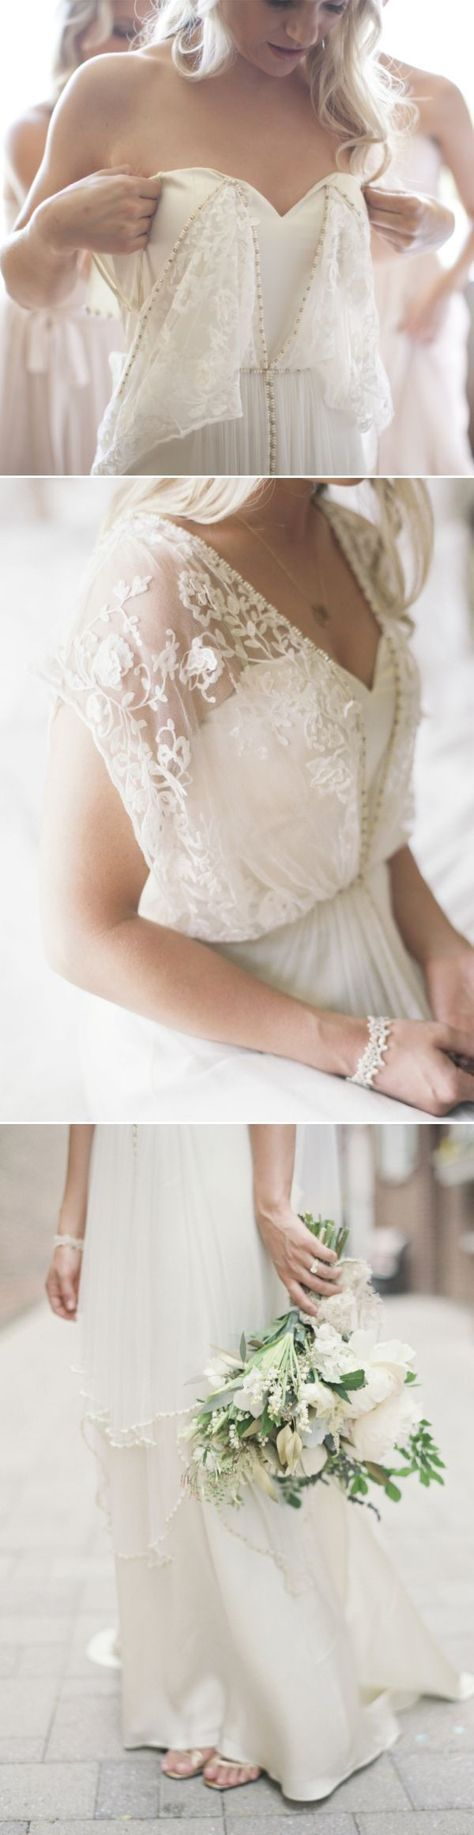 Top 20 Vintage Wedding Dresses for 2019 Trends - Oh Best Day Ever 1